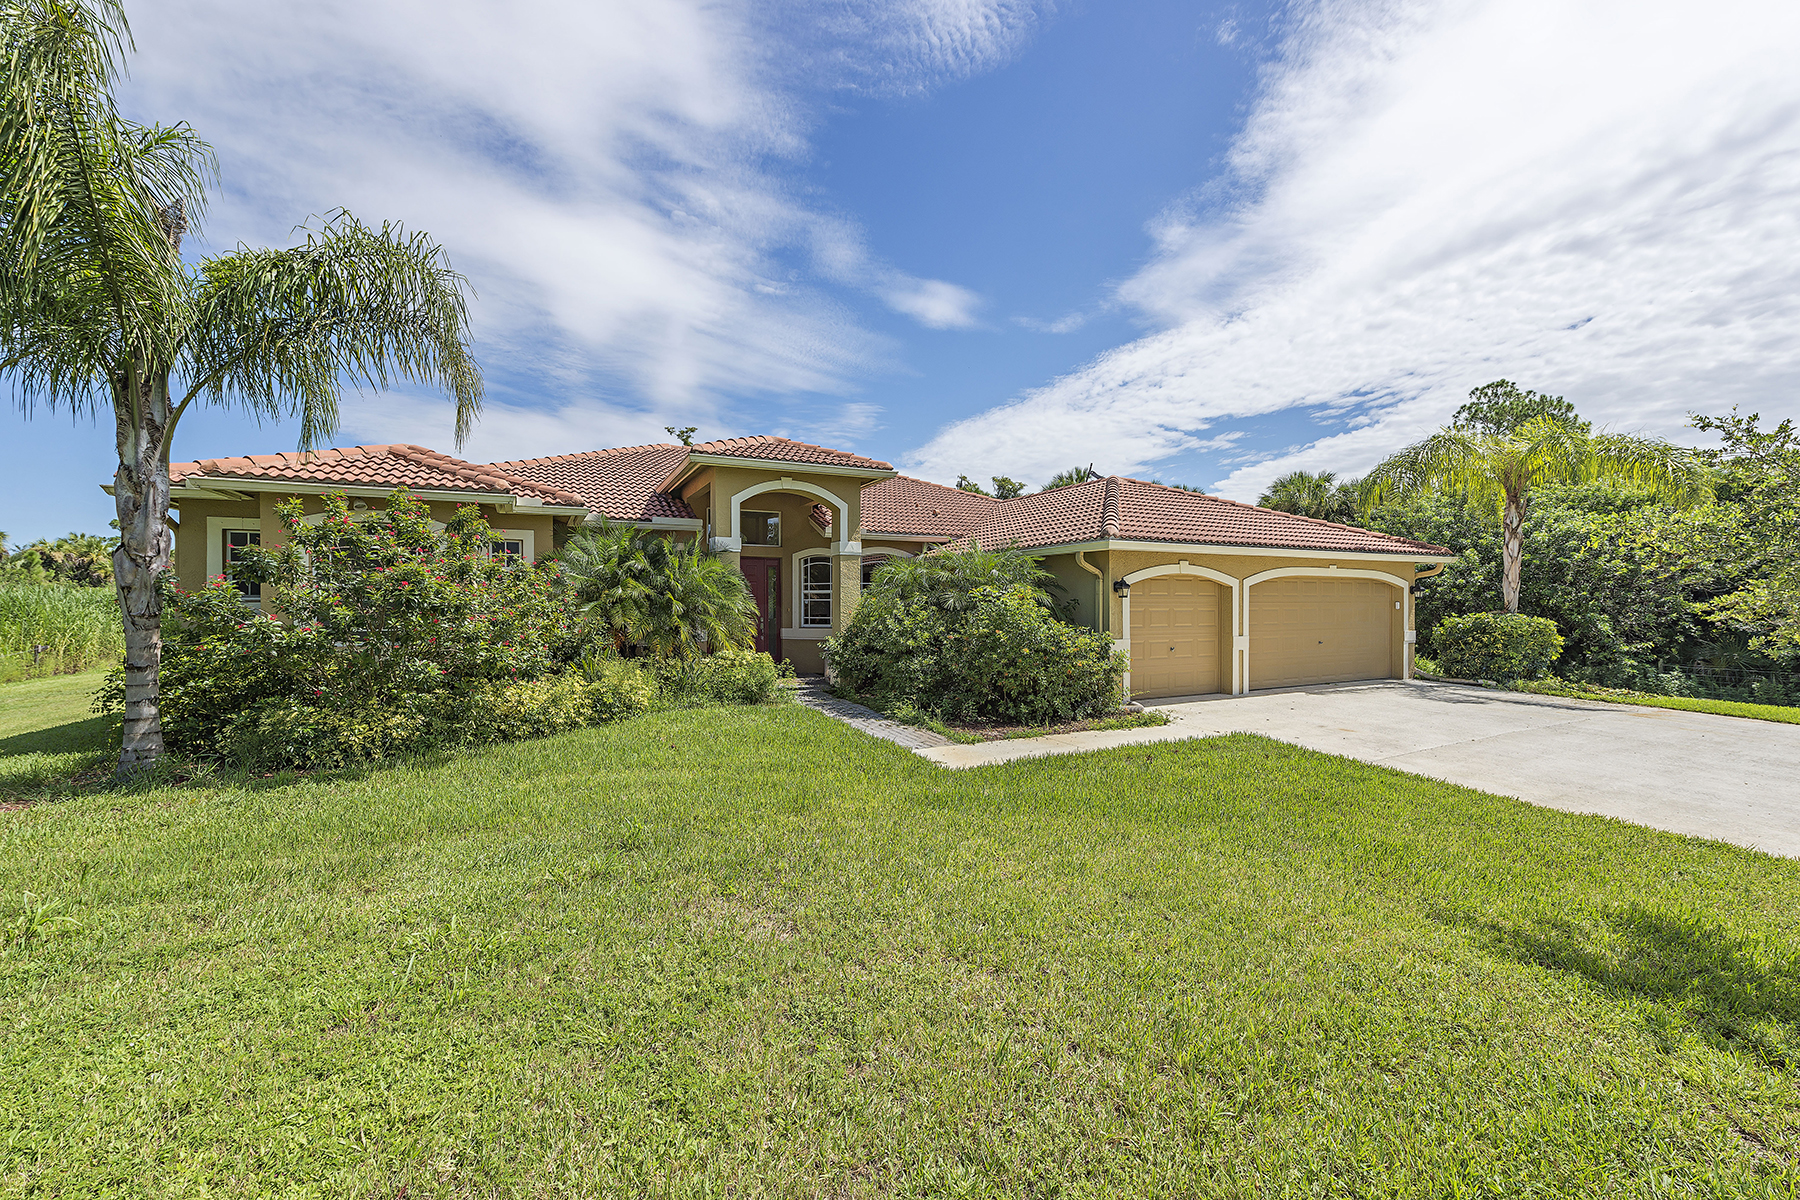 Single Family Home for Sale at GOLDEN GATE ESTATES 3837 28th Ave SE Naples, Florida, 34117 United States